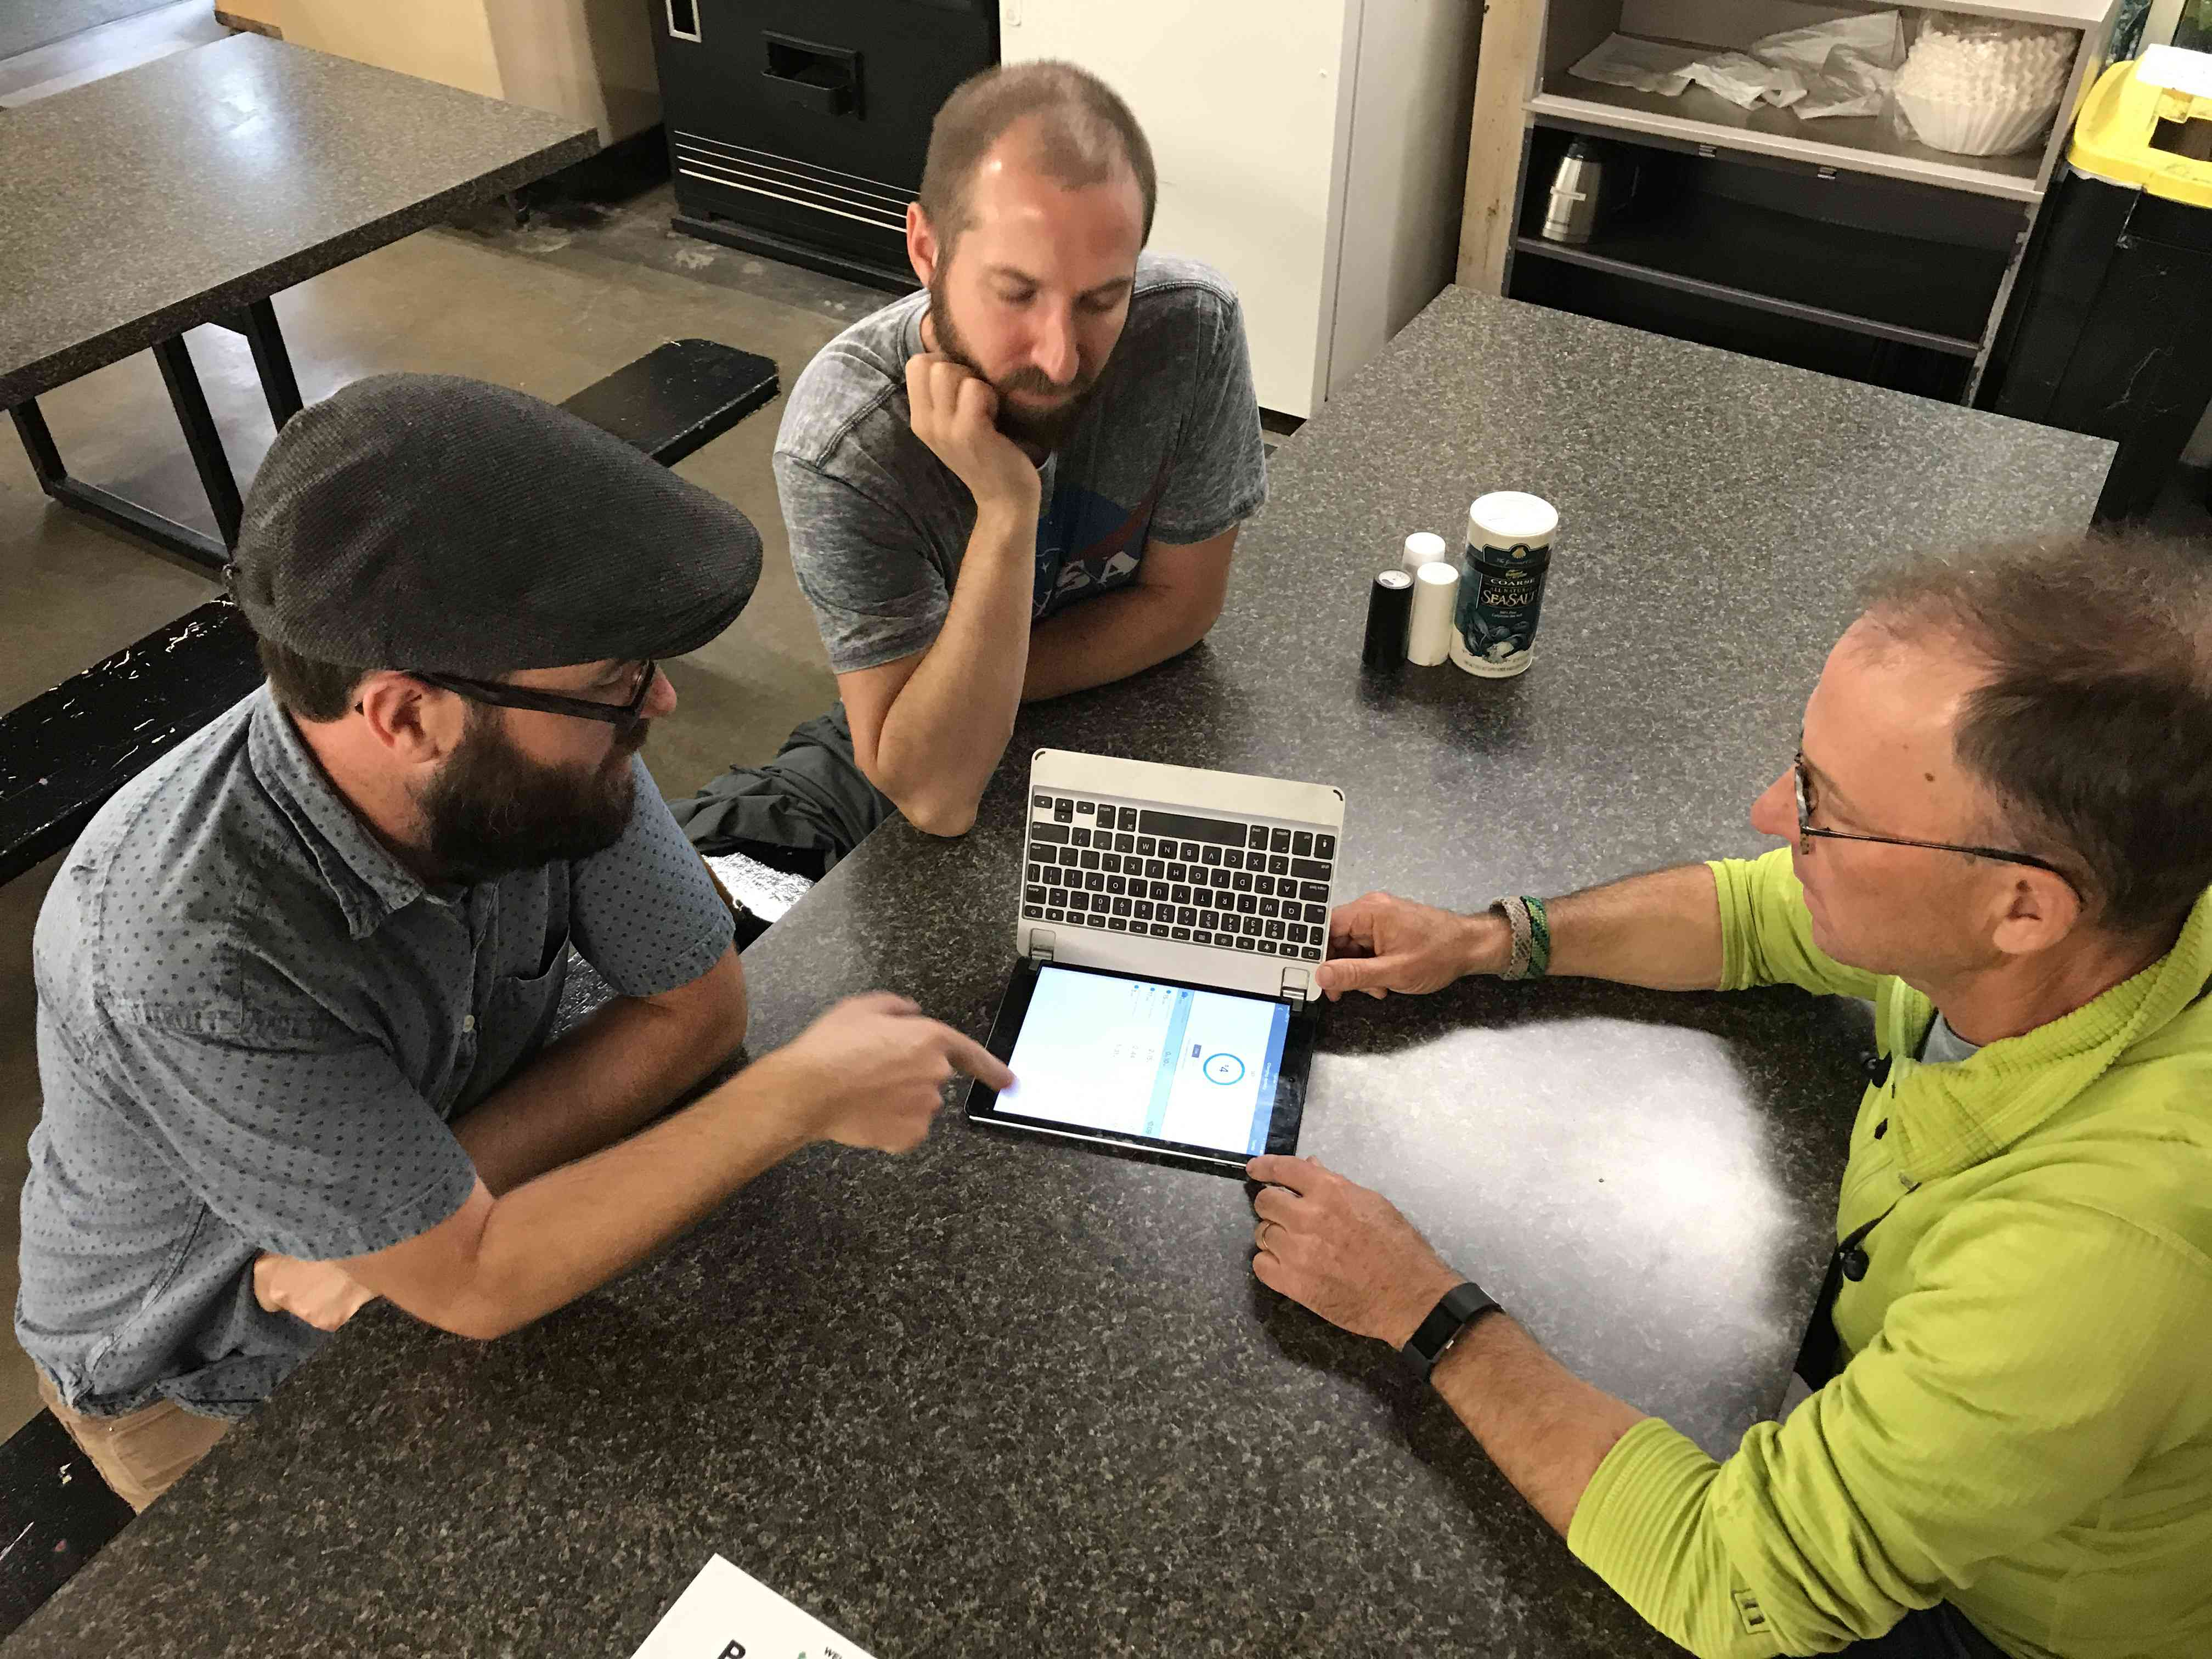 Three men meeting at a table with a tablet in between them